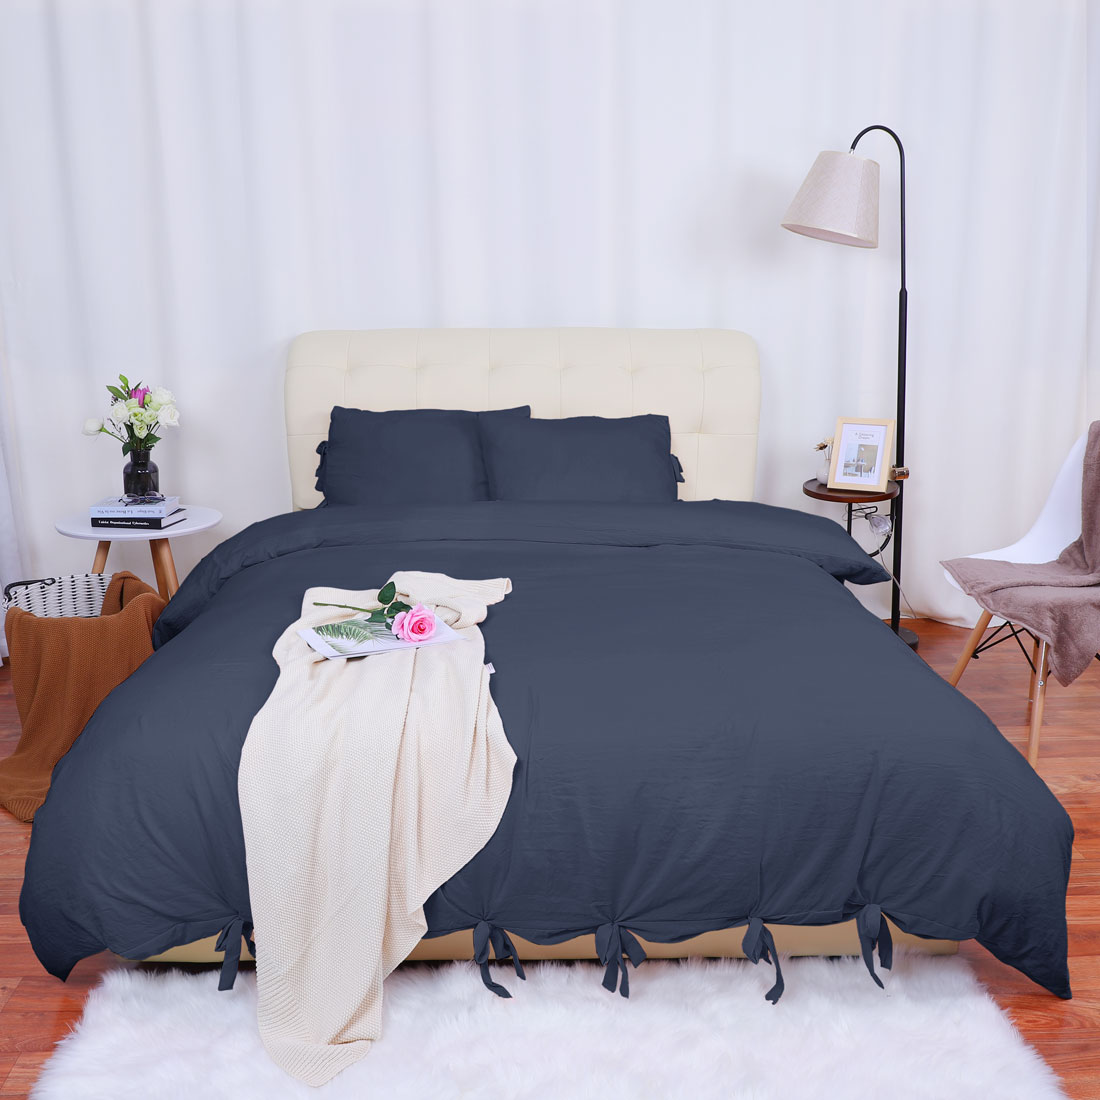 PiccoCasa Washed Cotton Bedding Comforter Duvet Cover Pillowcase Set